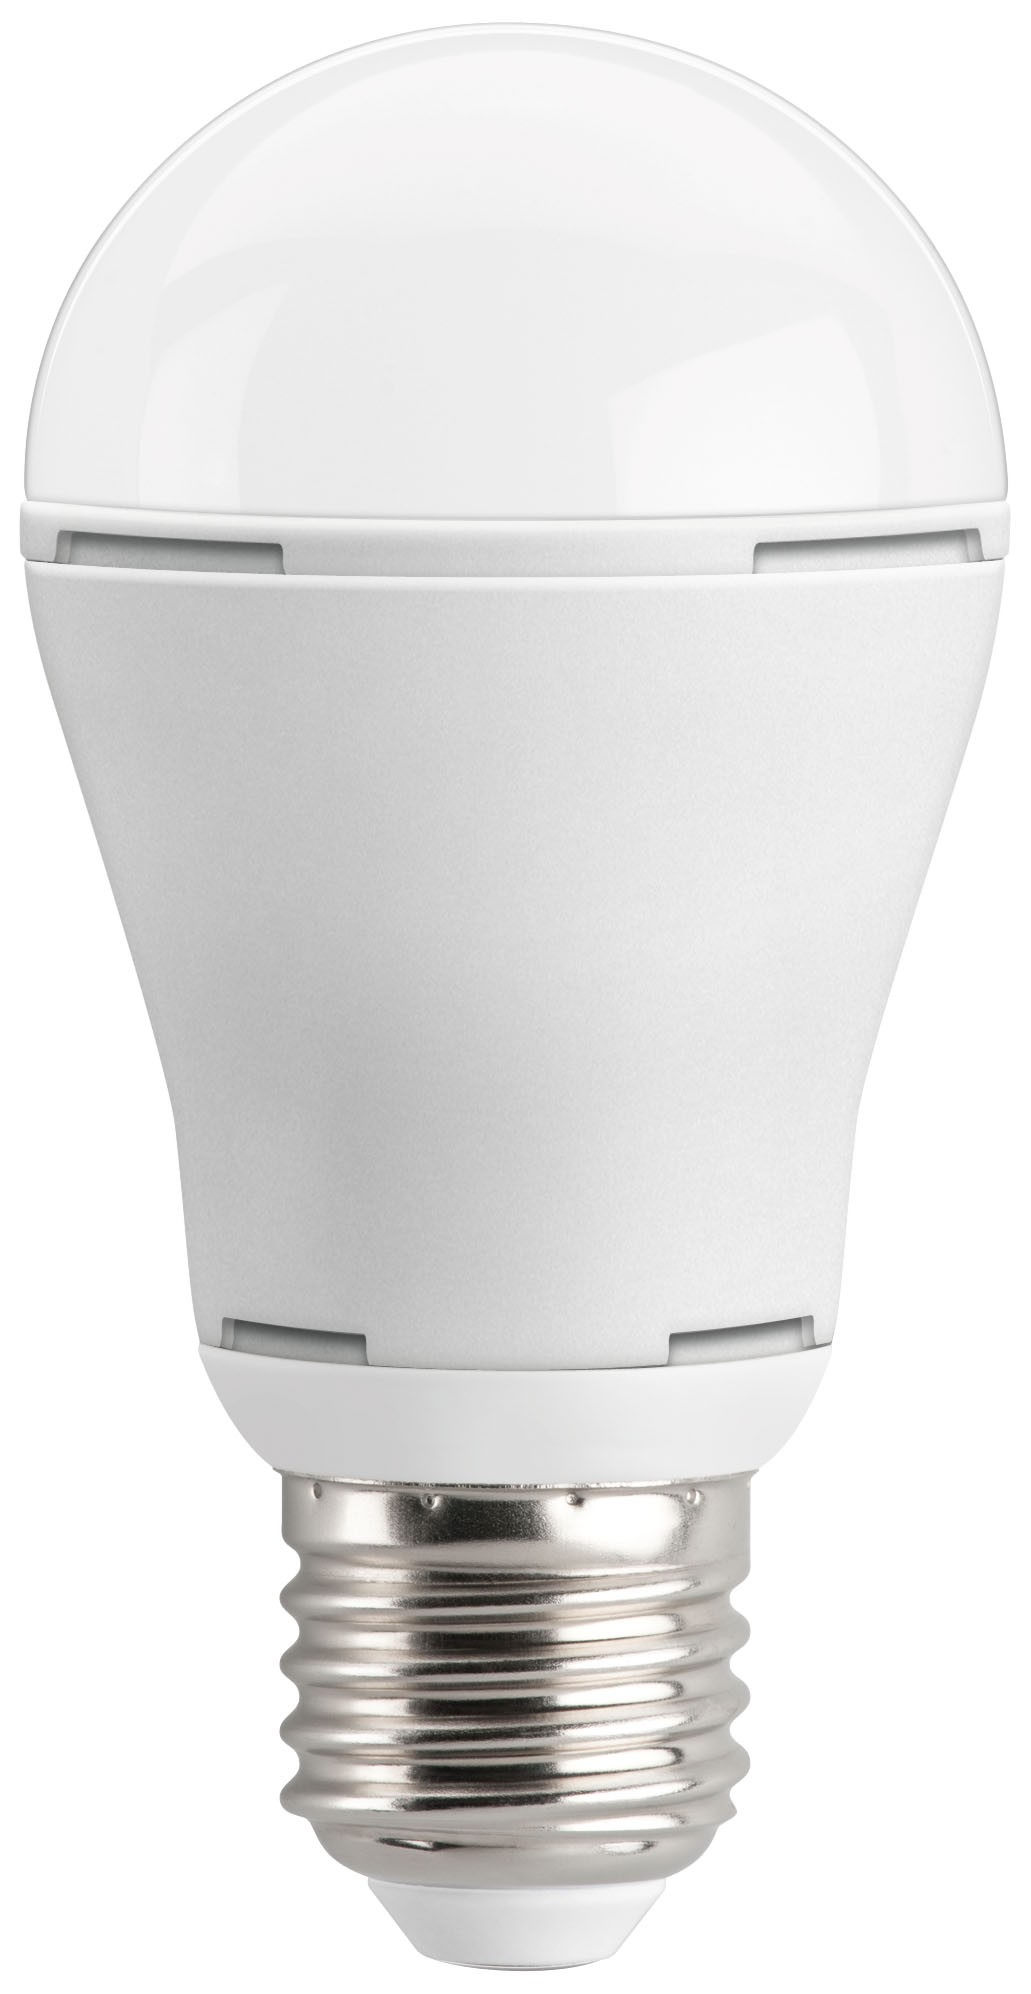 Led Birne E27 Warmweiss Goobay Led Birne A60 E27 160 Warmweiß 10 5w 810lm